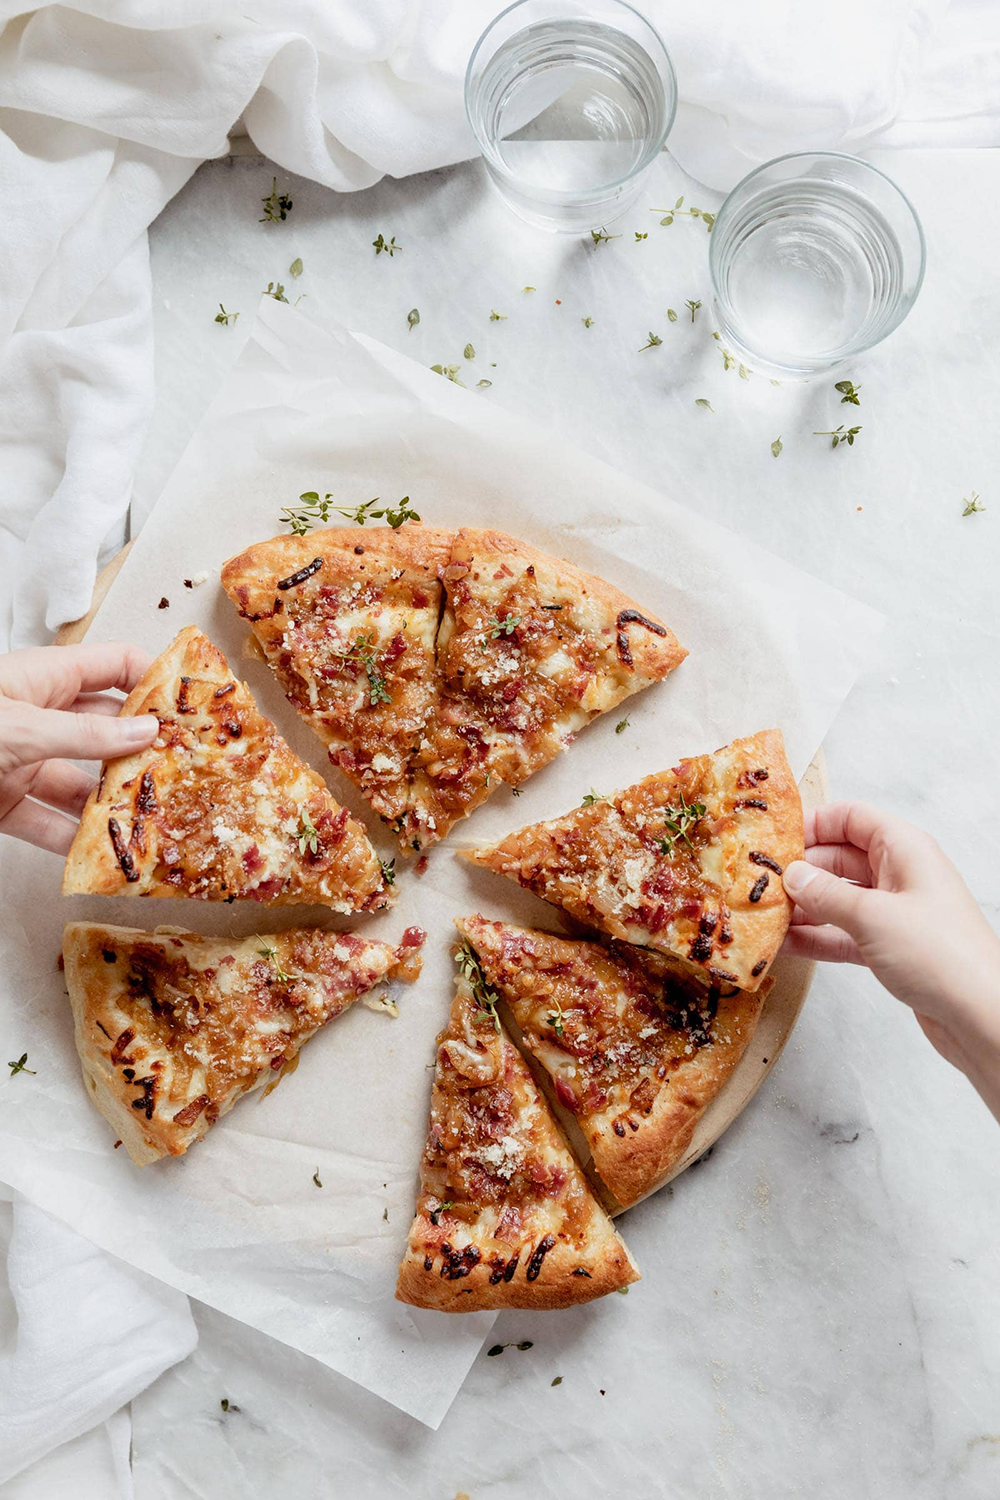 12 Homemade Pizza & Flatbread Recipes To Try - roomfortuesday.com